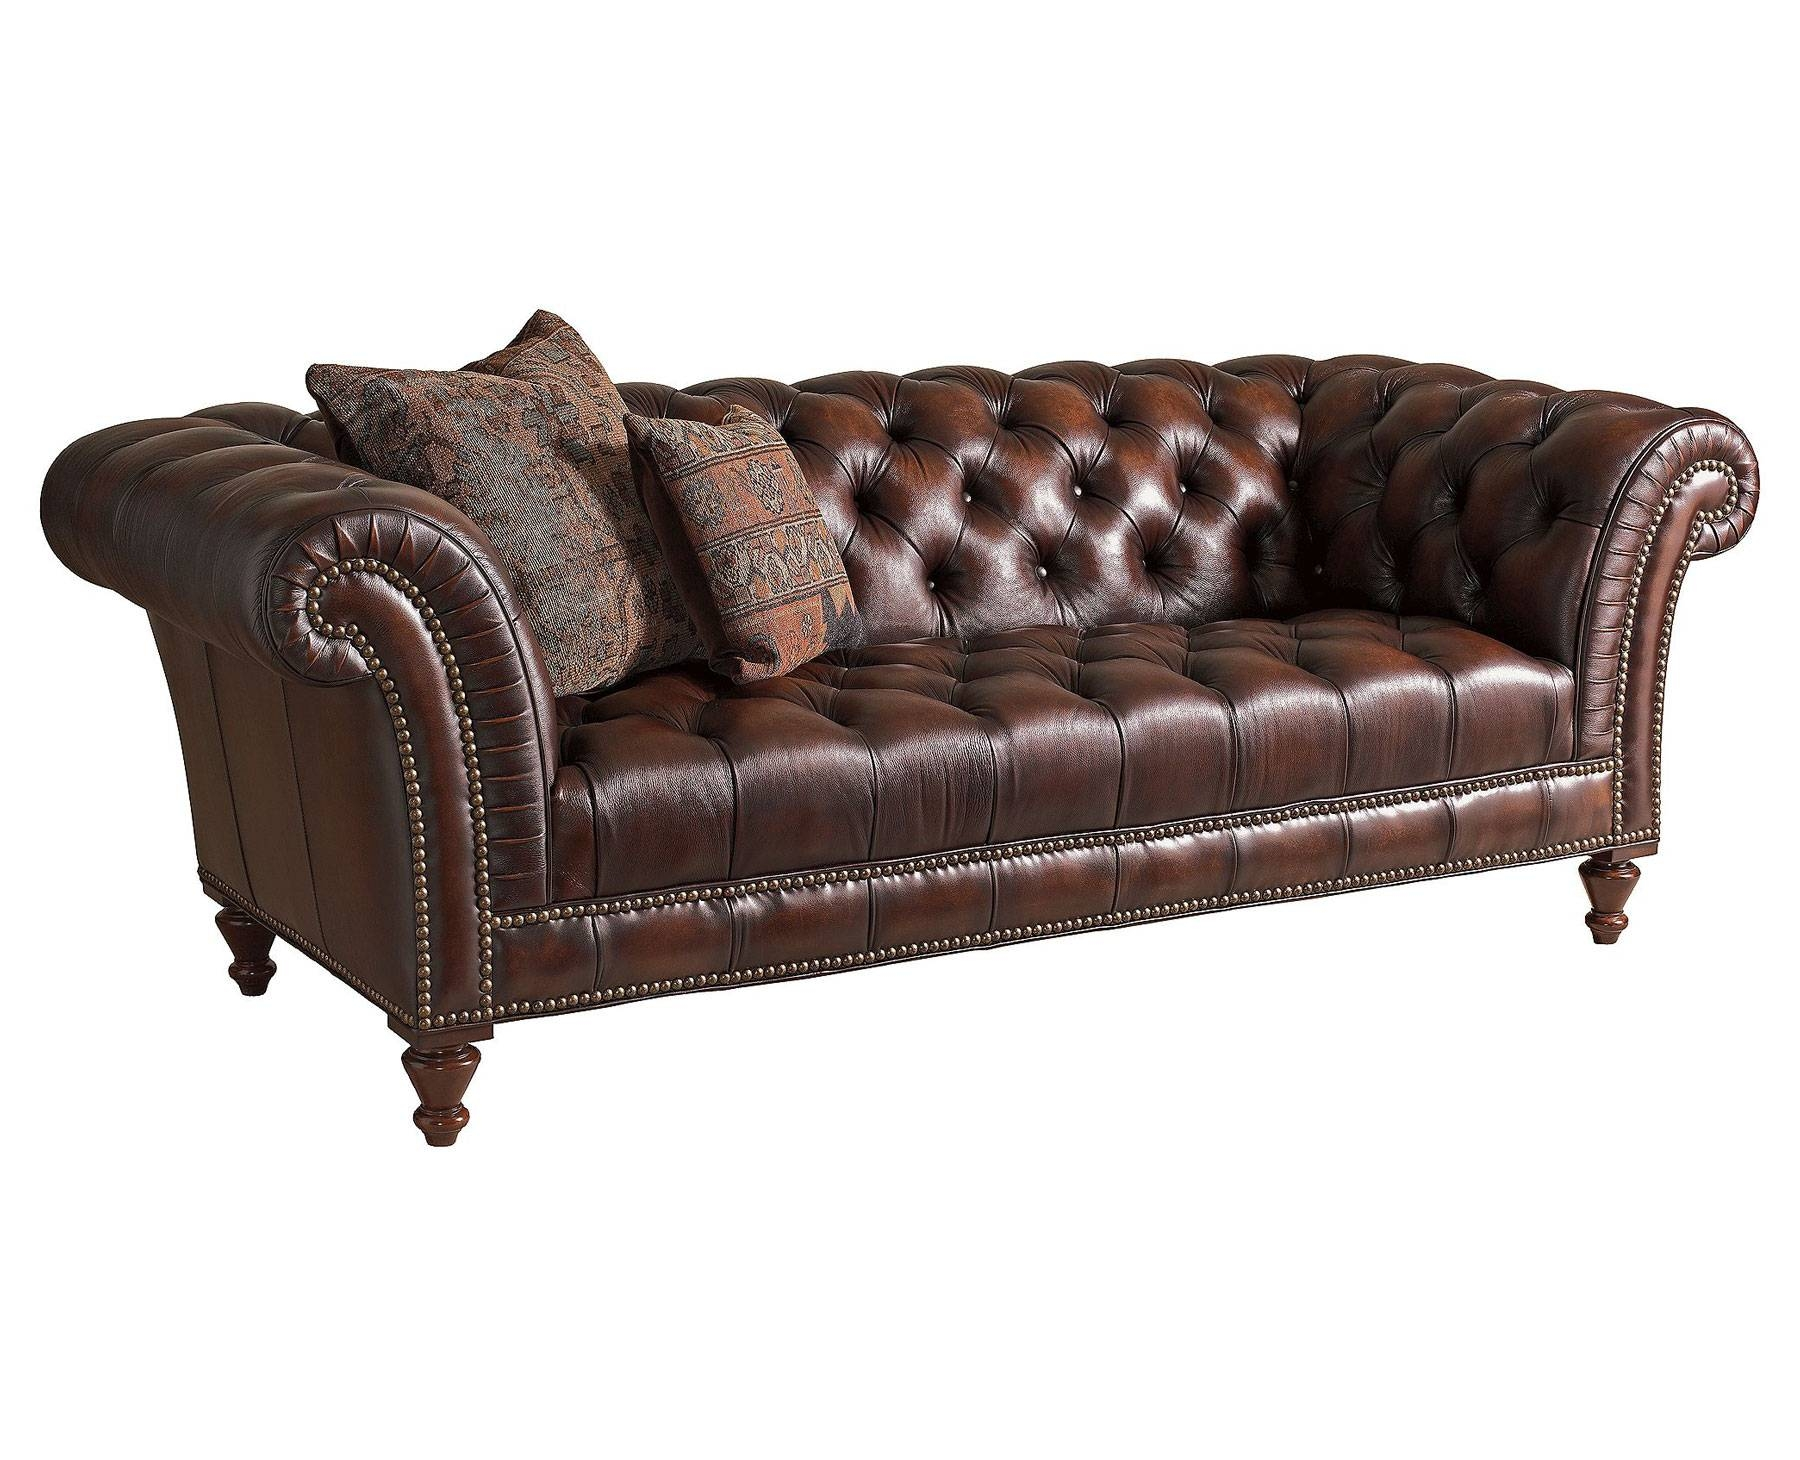 Sofas Center : Leather Tufted Sofa With Rolled Arms Modern Like intended for Cheap Tufted Sofas (Image 22 of 30)